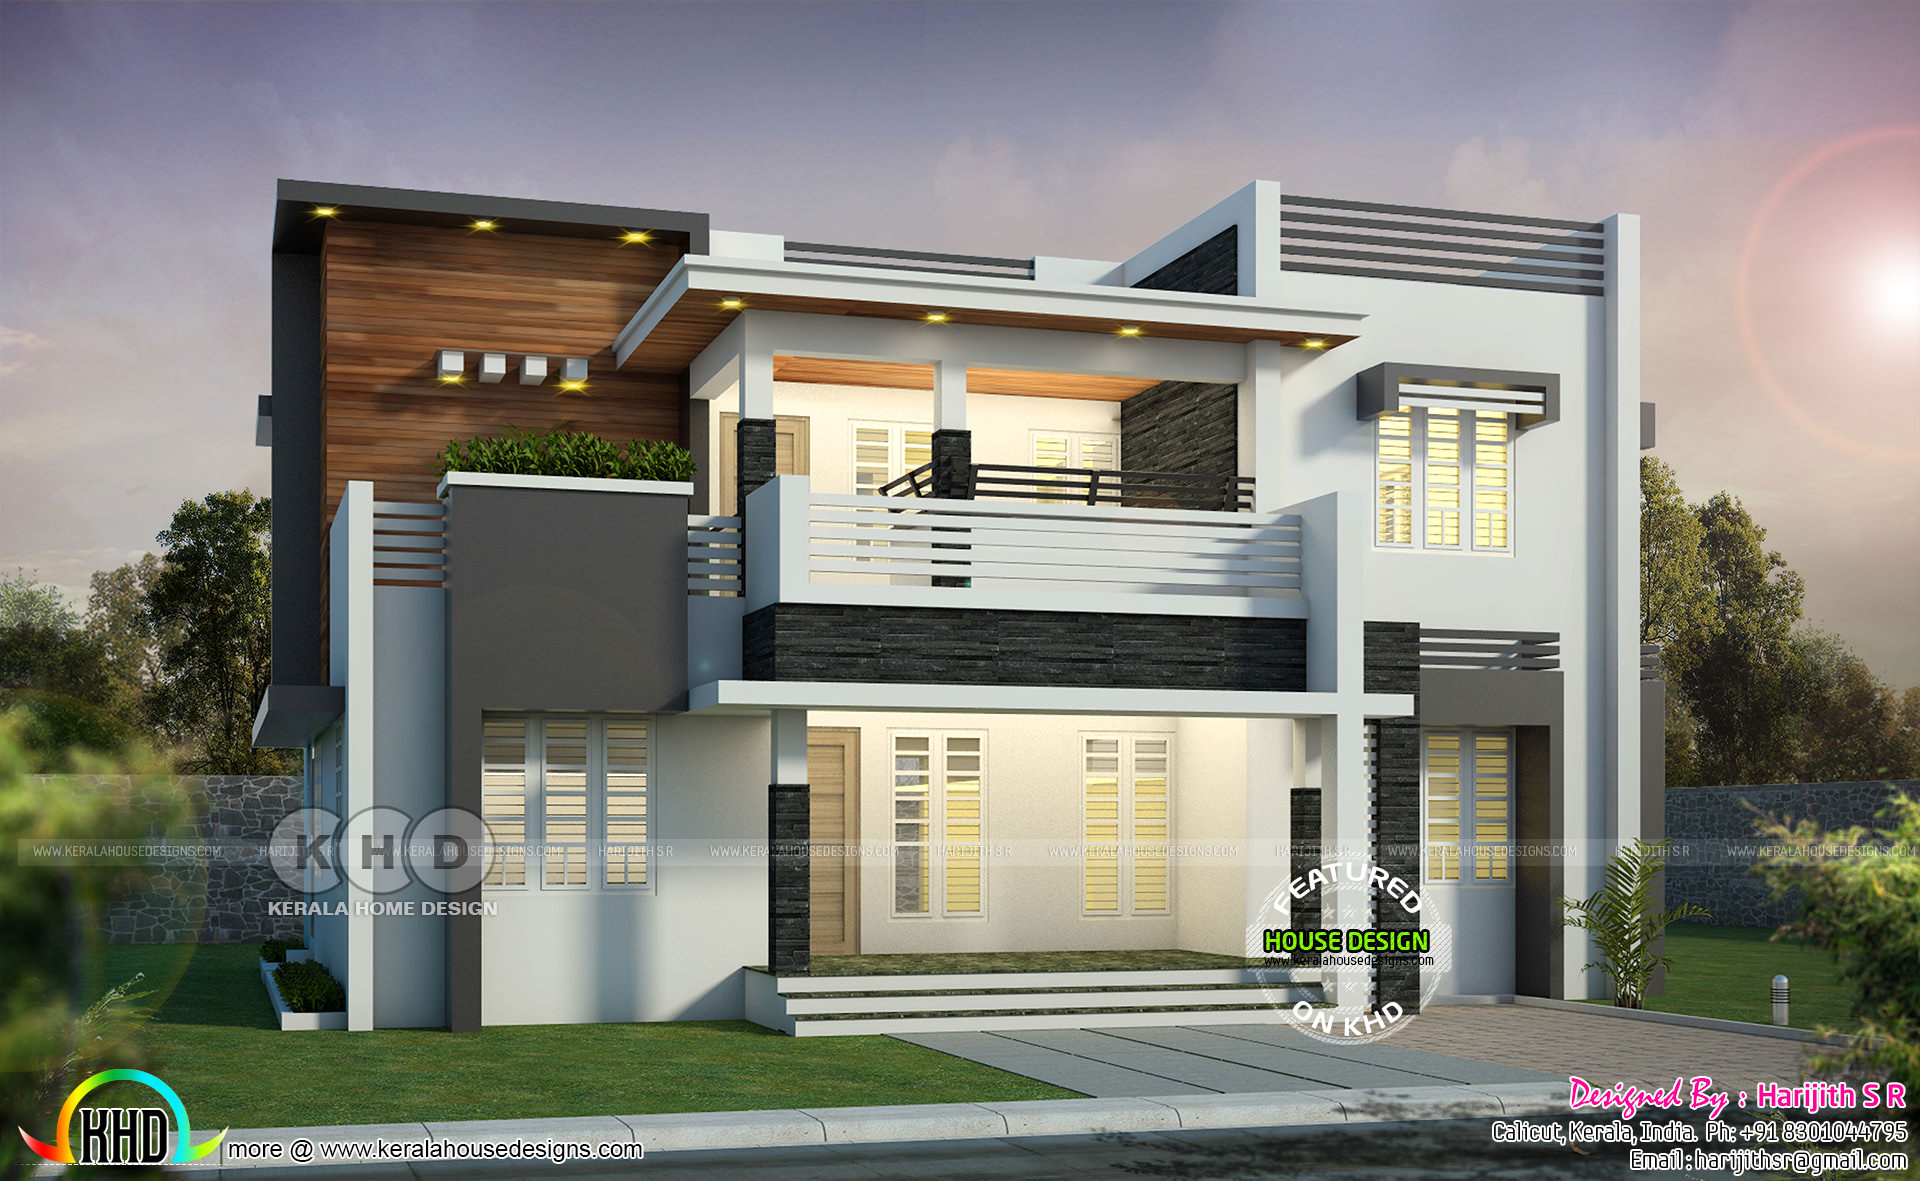 May 2019 House Designs Starts Here 2161 Sq Ft Home Kerala Home Design Bloglovin